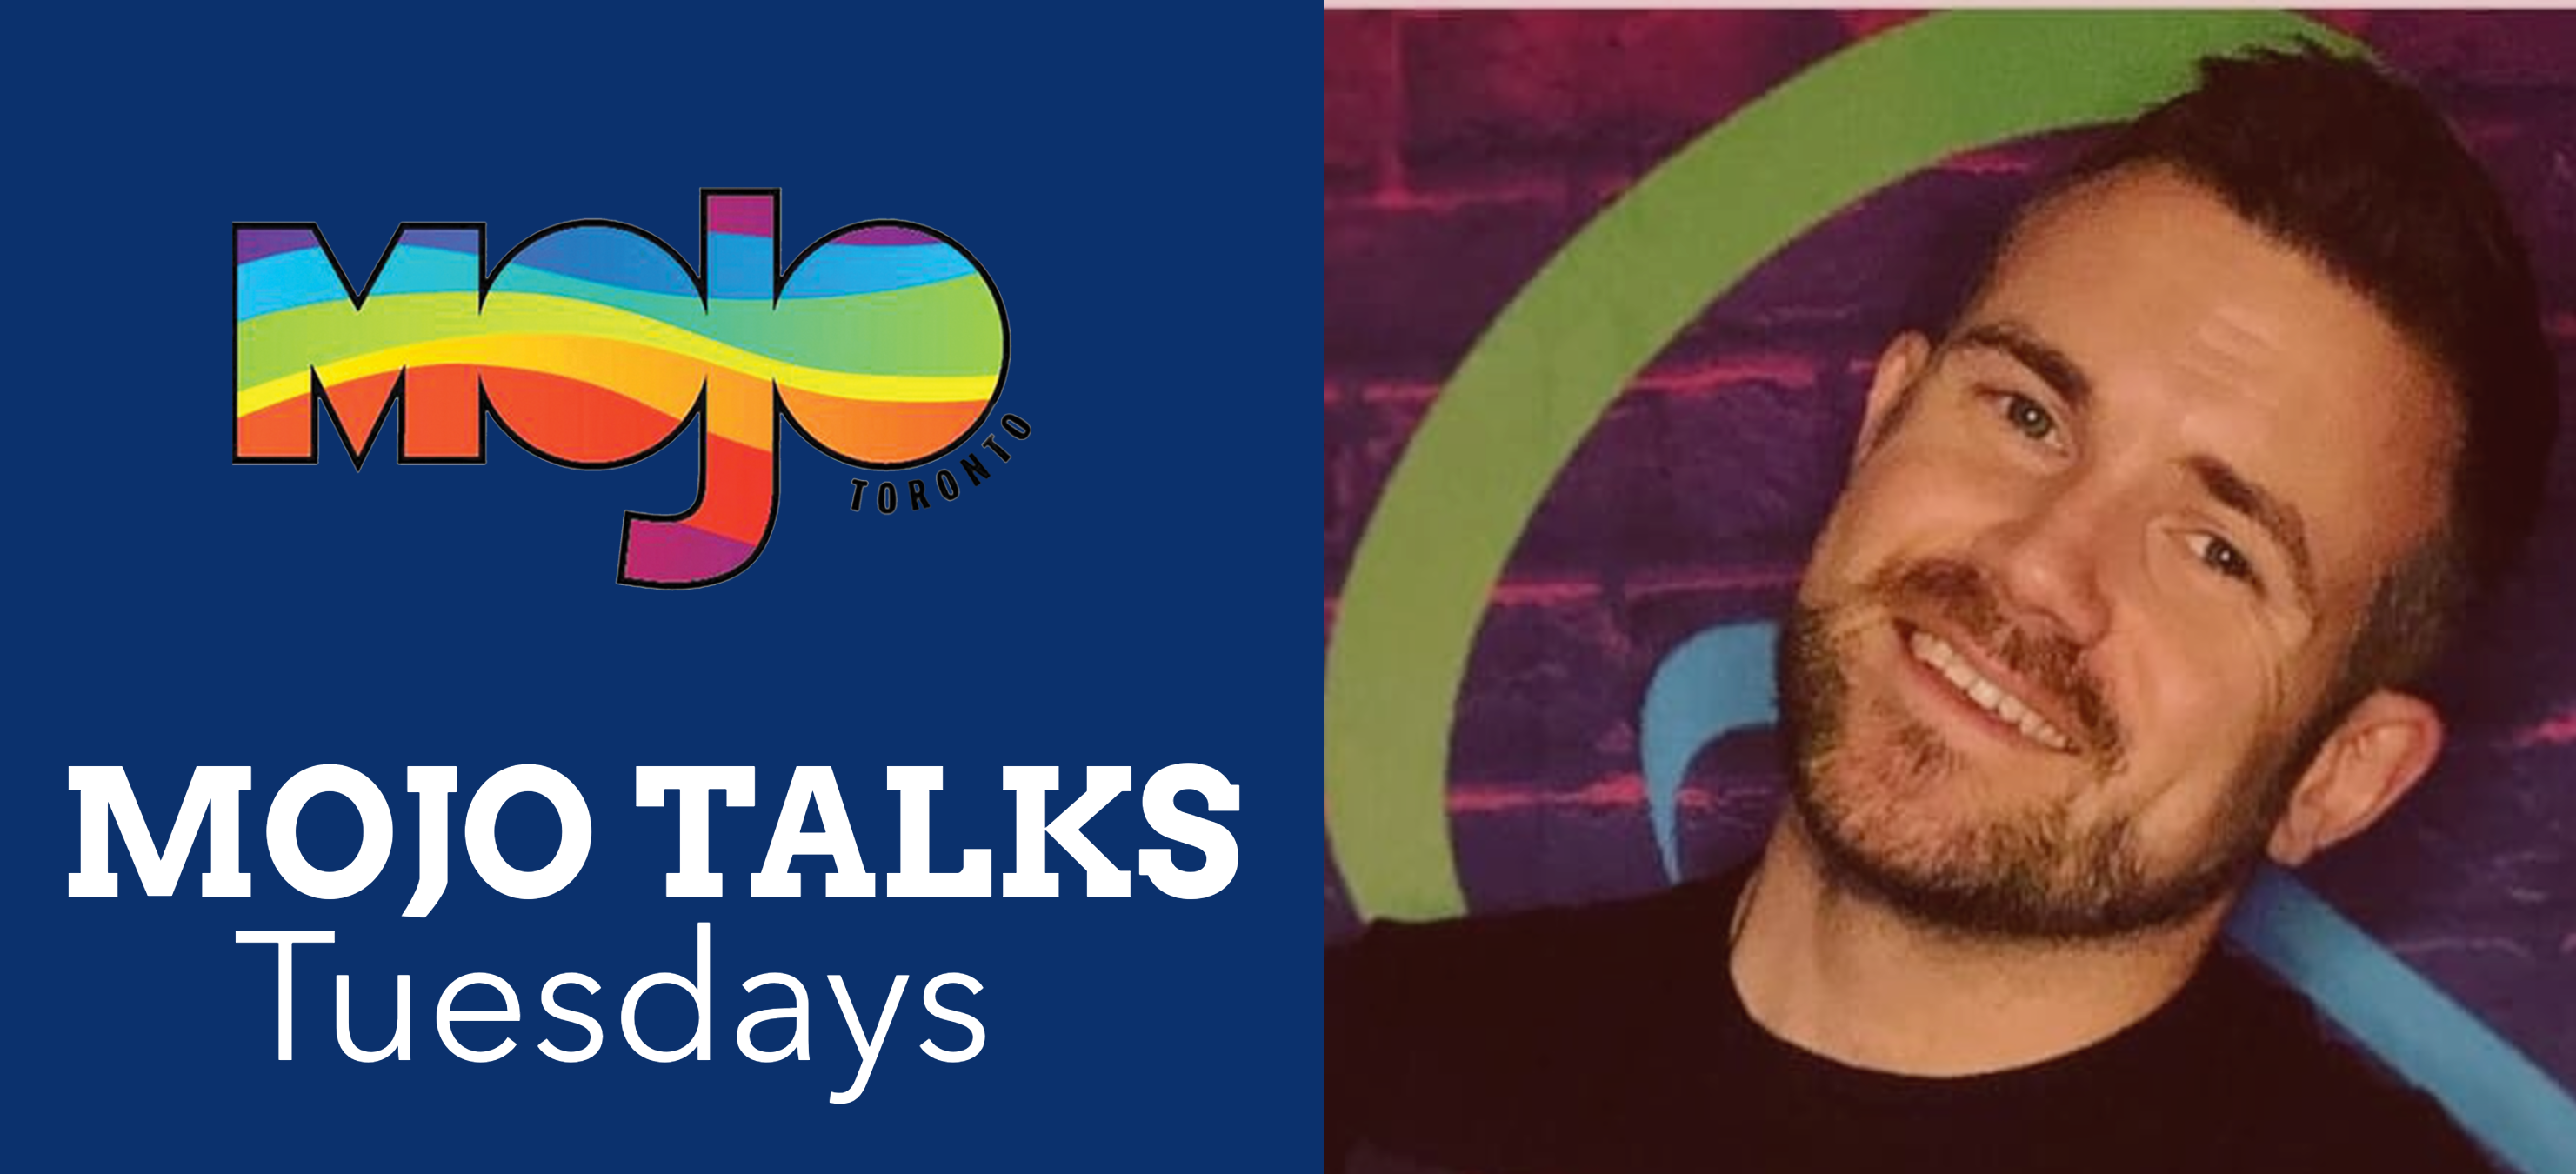 "MOJO Talks Tuesdays (E1): Talking Gay Rugby with Christian John from ""Ruck My Life"""